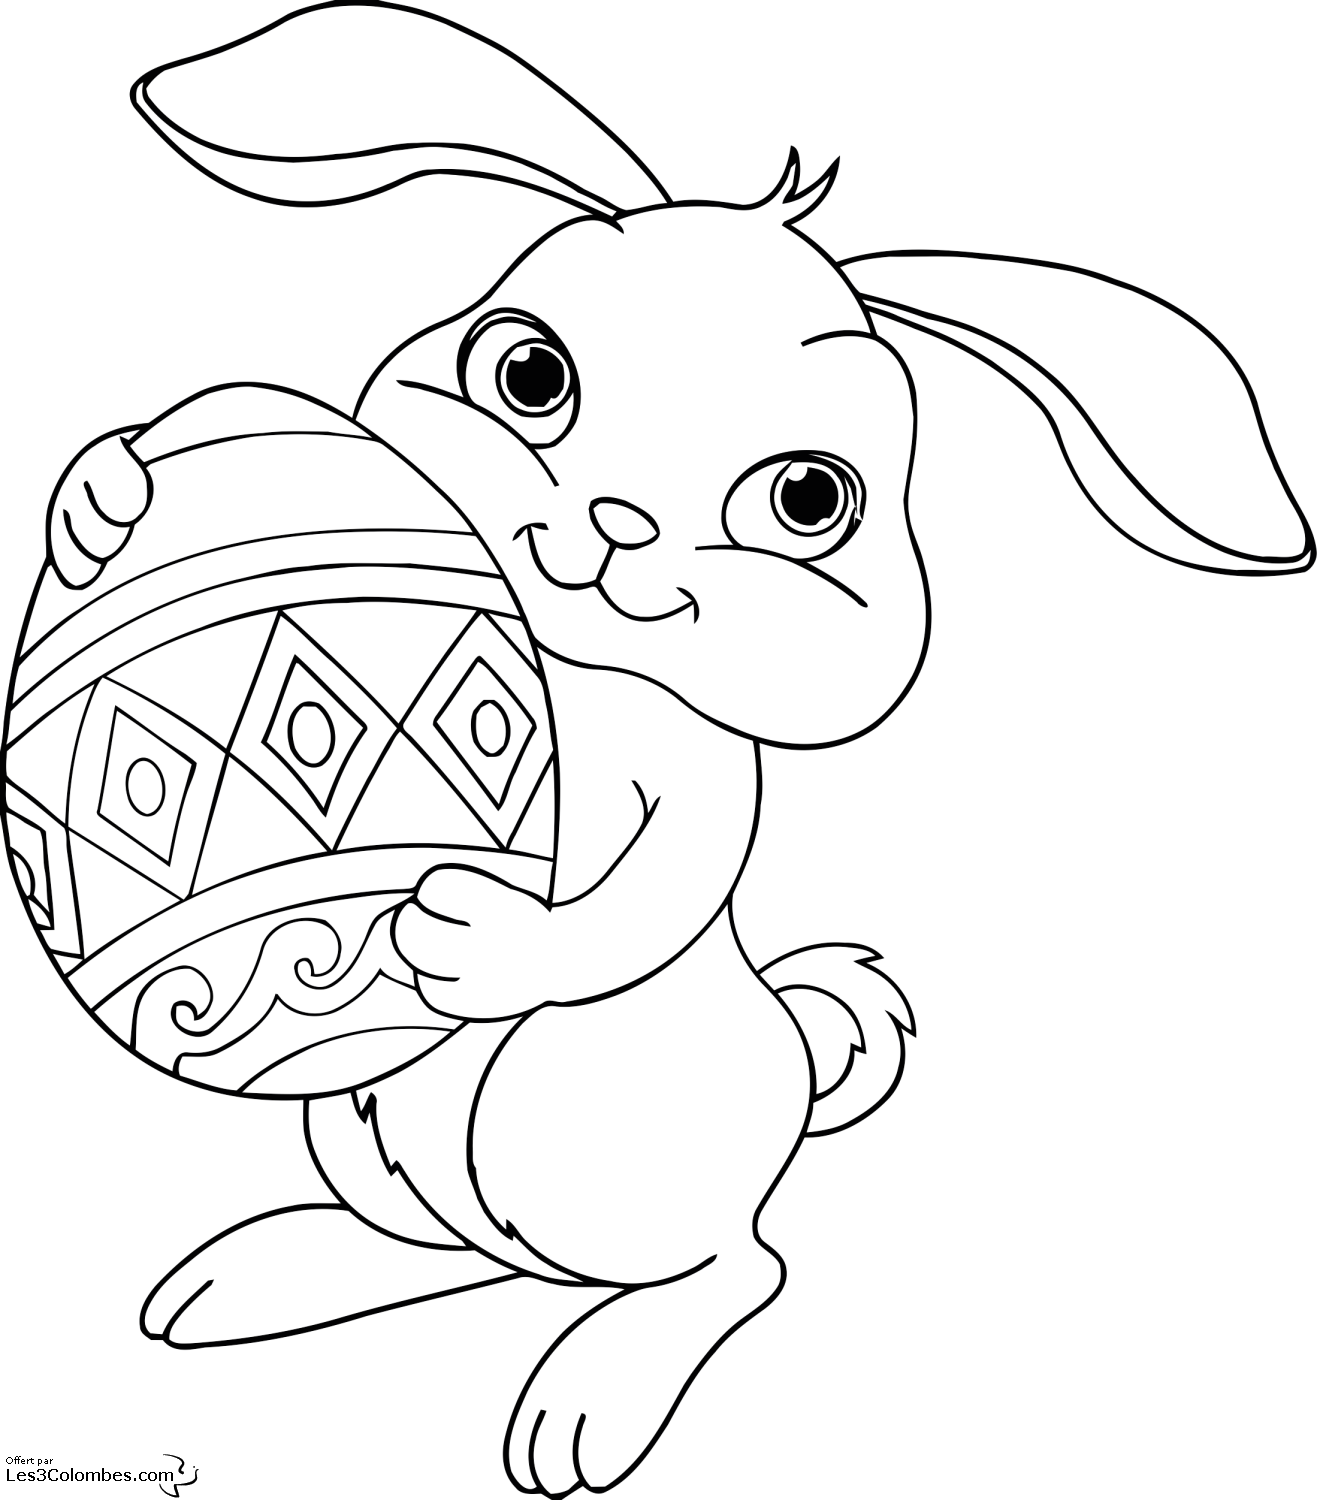 Easter Coloring Pages | 1500x1323